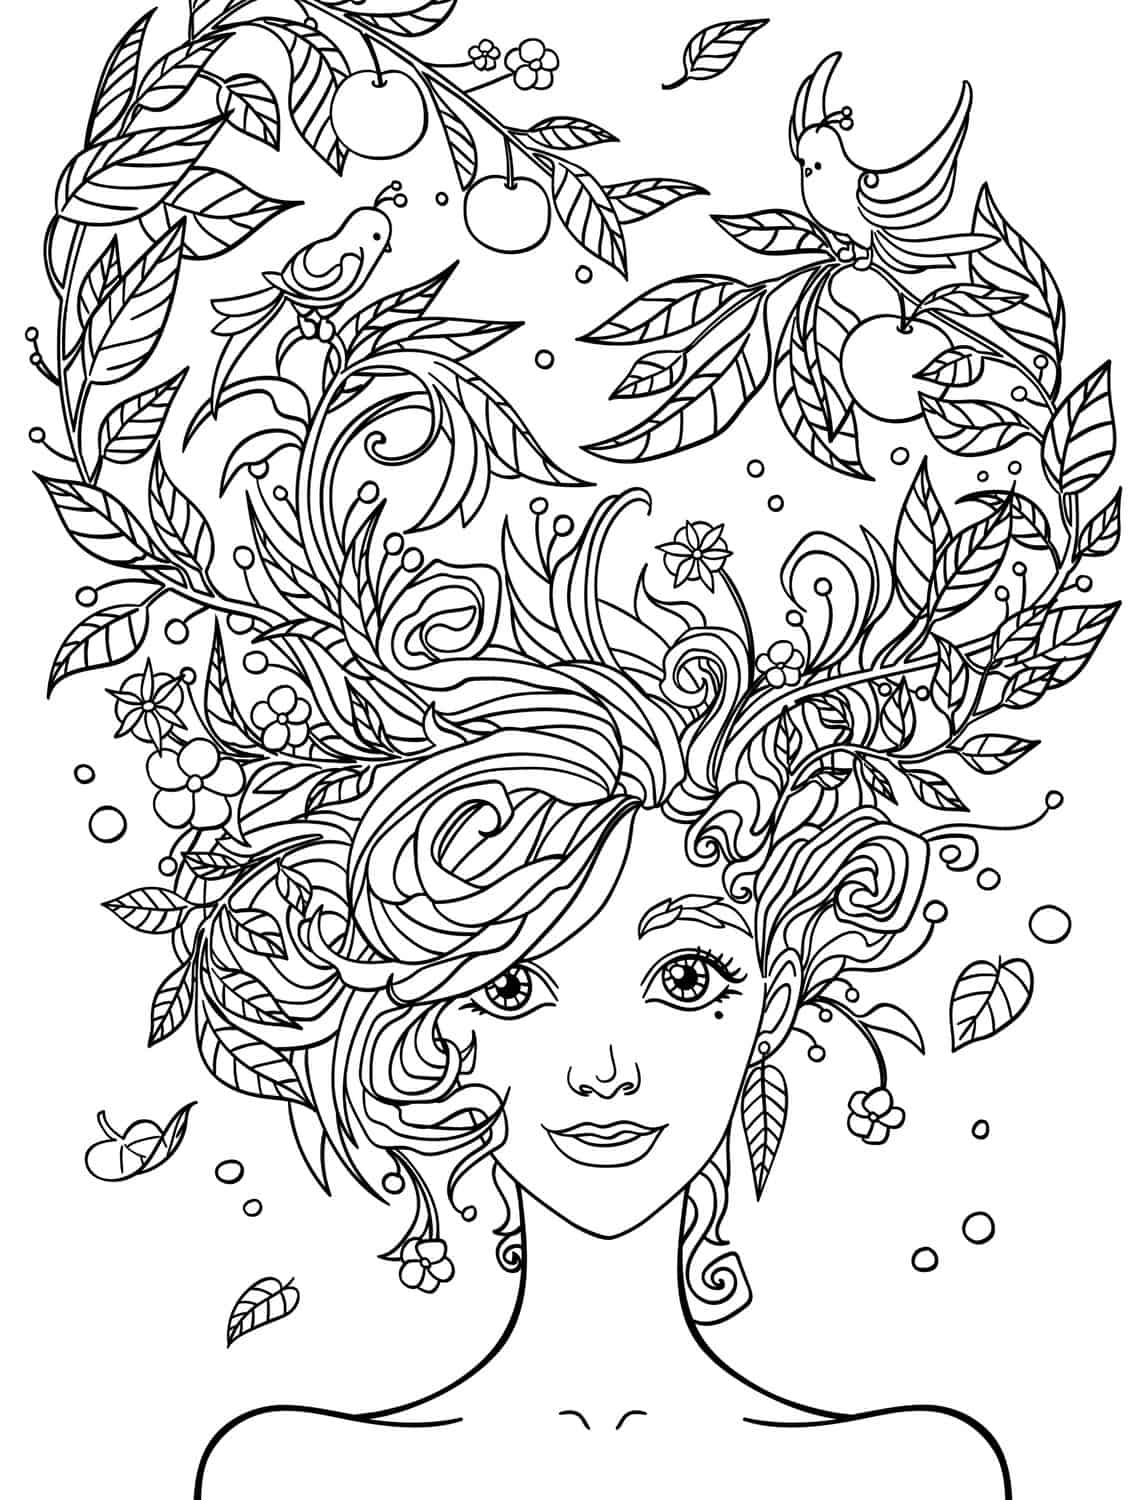 crazy coloring pages for adults - photo#9